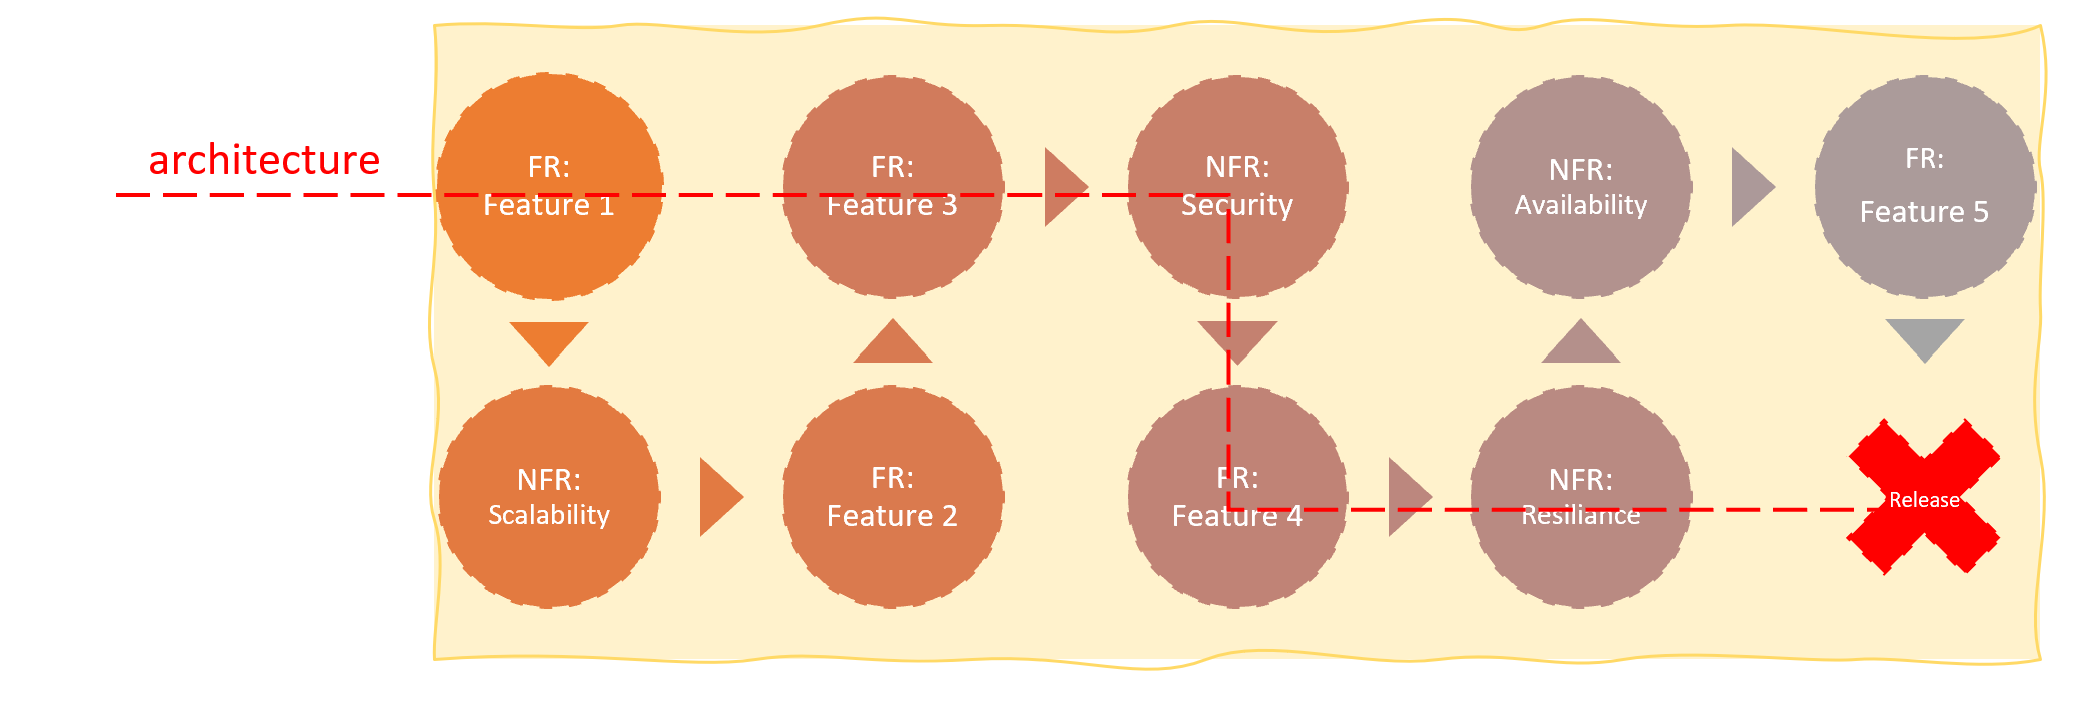 Architecture on feature map